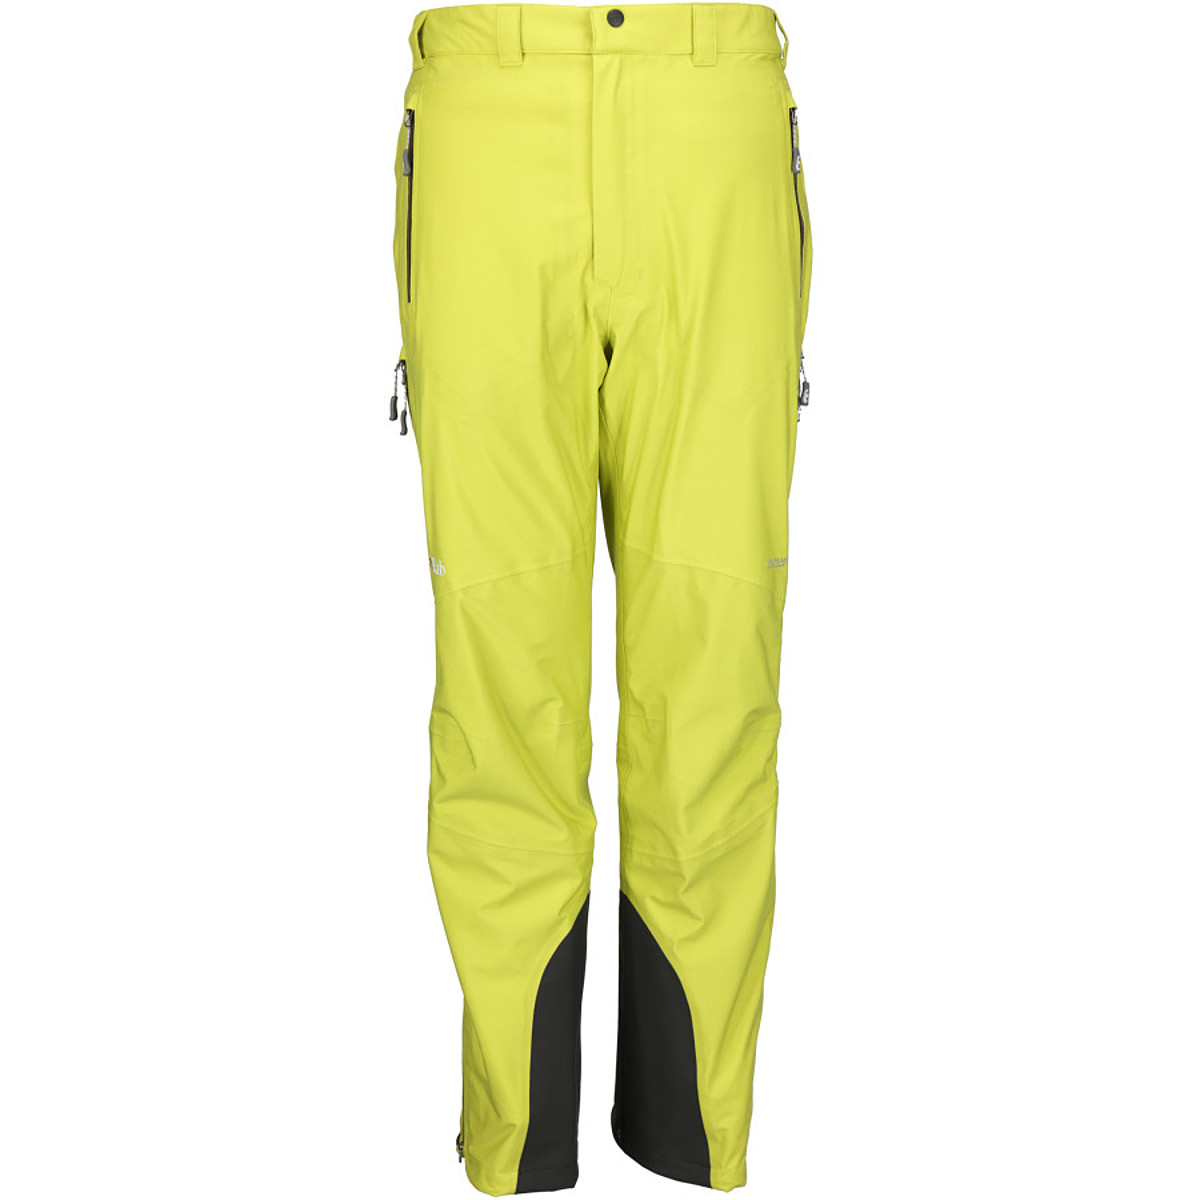 Rab Stretch Neo Pants